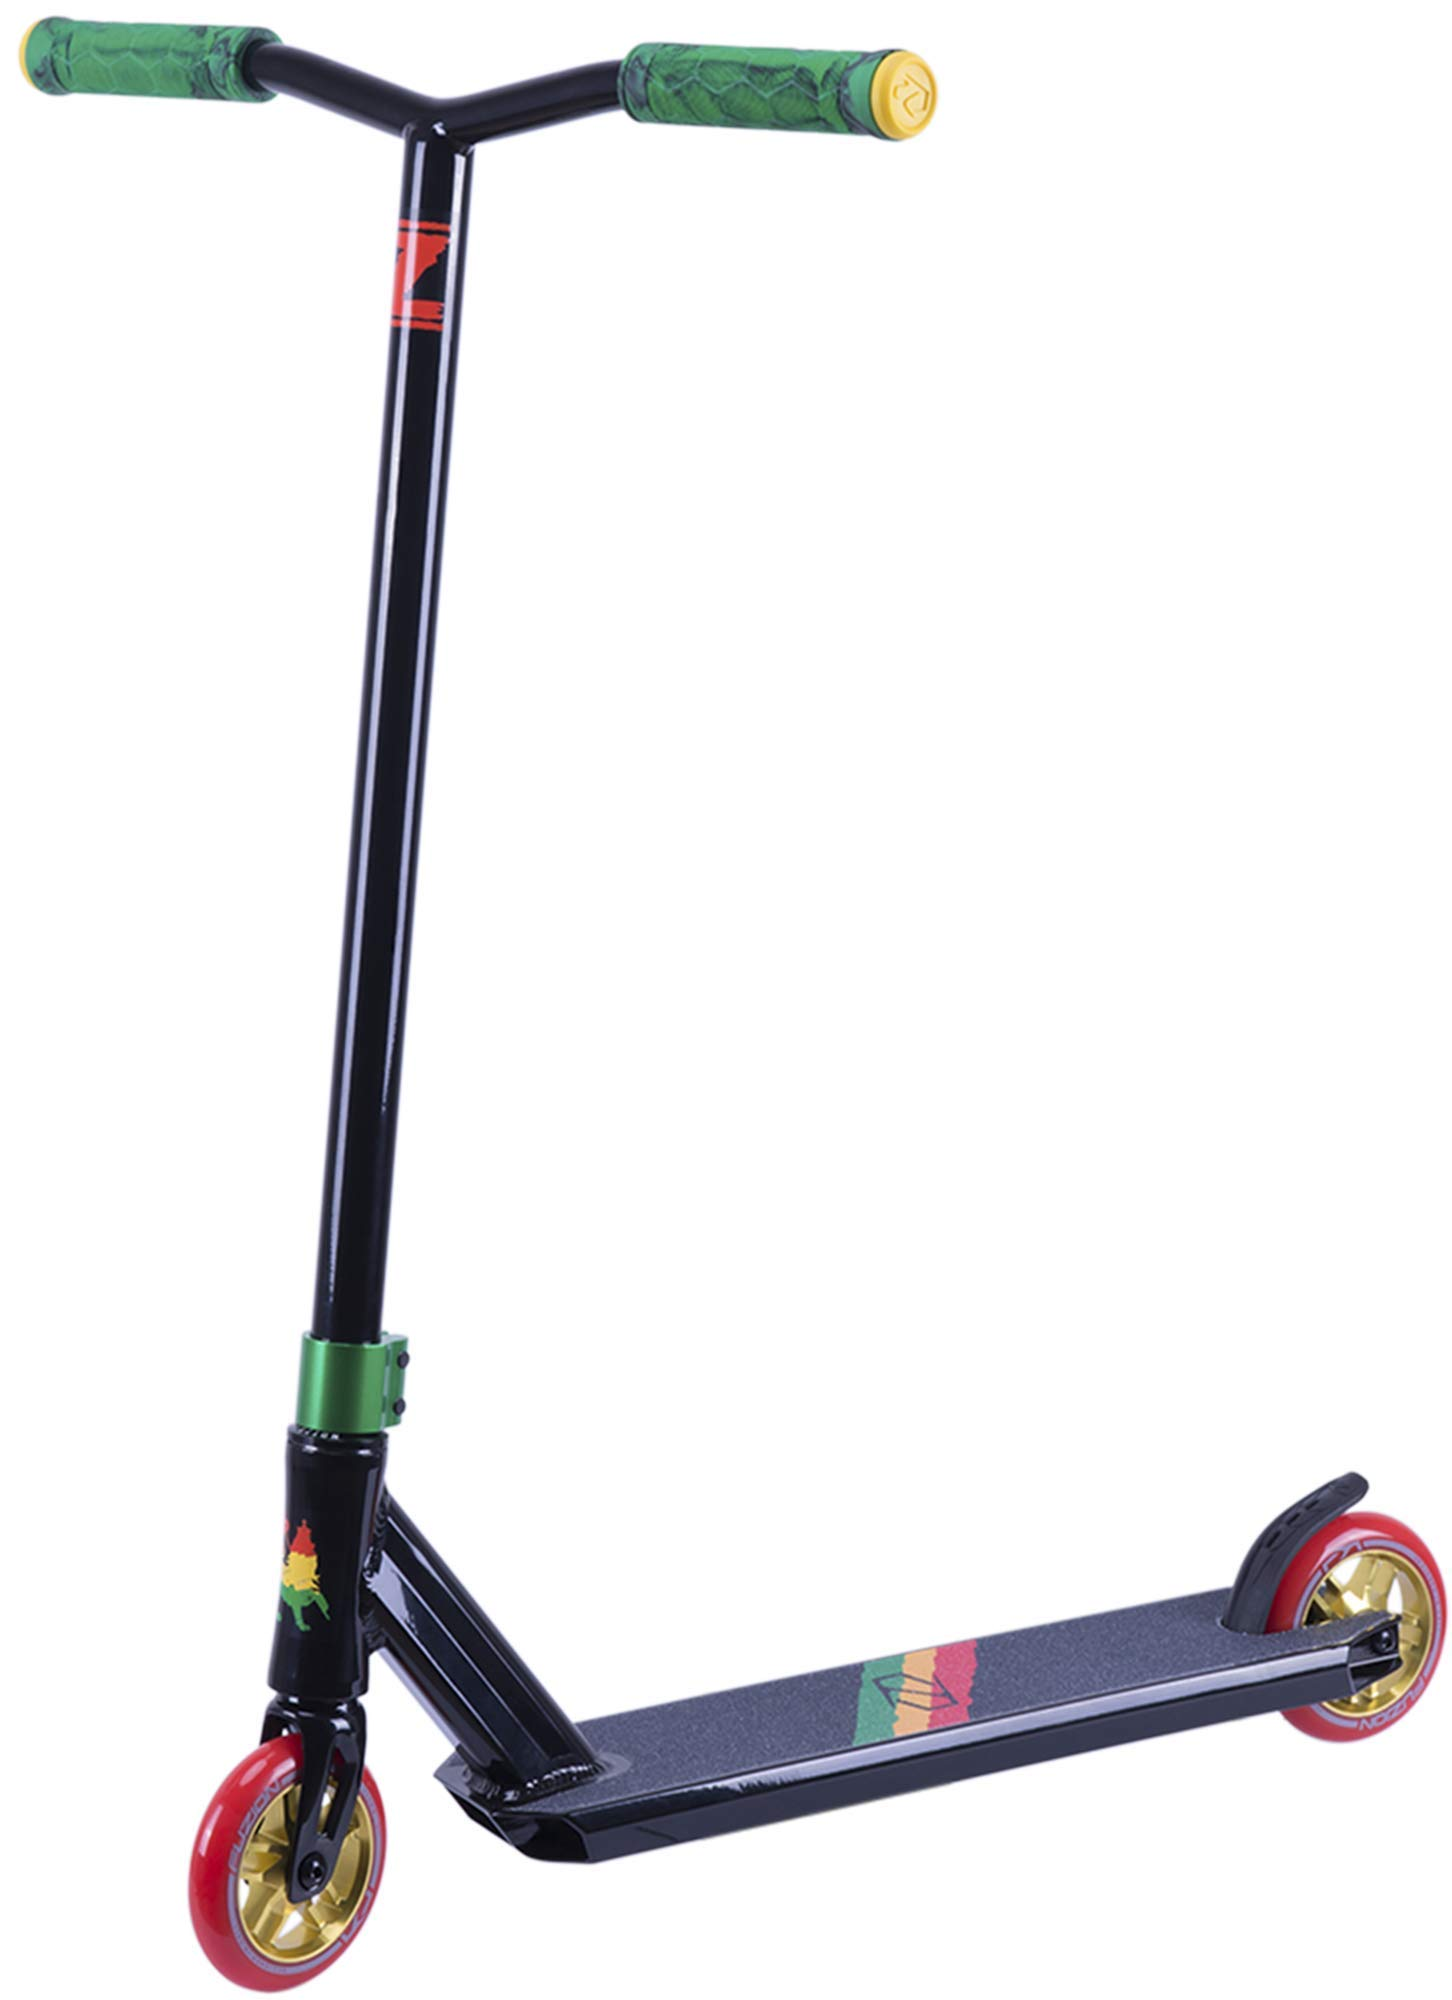 Fuzion Z250 Pro Scooters - Trick Scooter - Intermediate and Beginner Stunt Scooters for Kids 8 Years and Up, Teens and Adults – Durable Freestyle Kick Scooter for Boys and Girls (2019 Rasta)